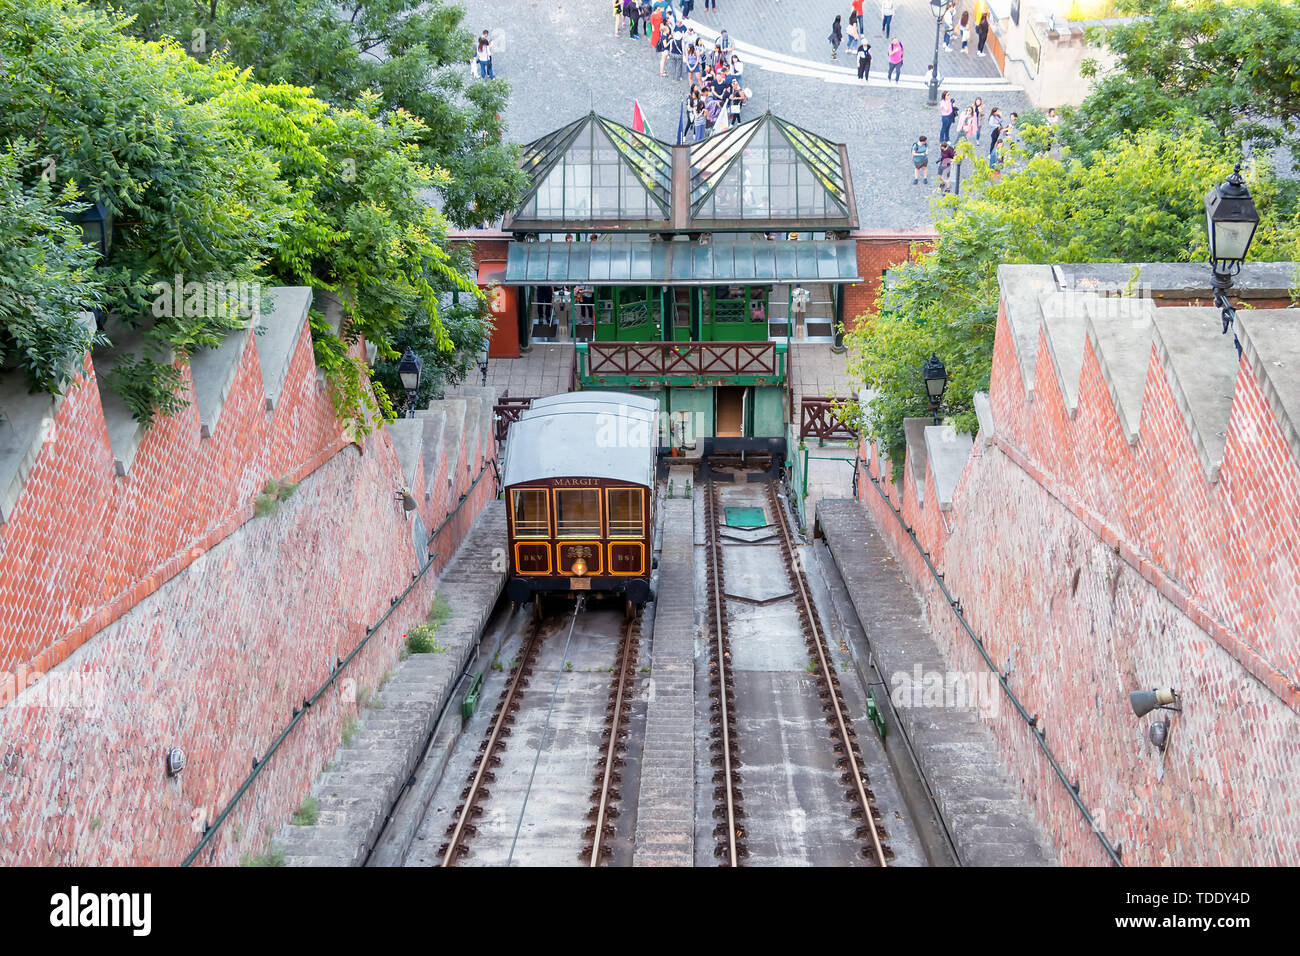 Funicular tram train going to Buda Castle in Budapest Stock Photo